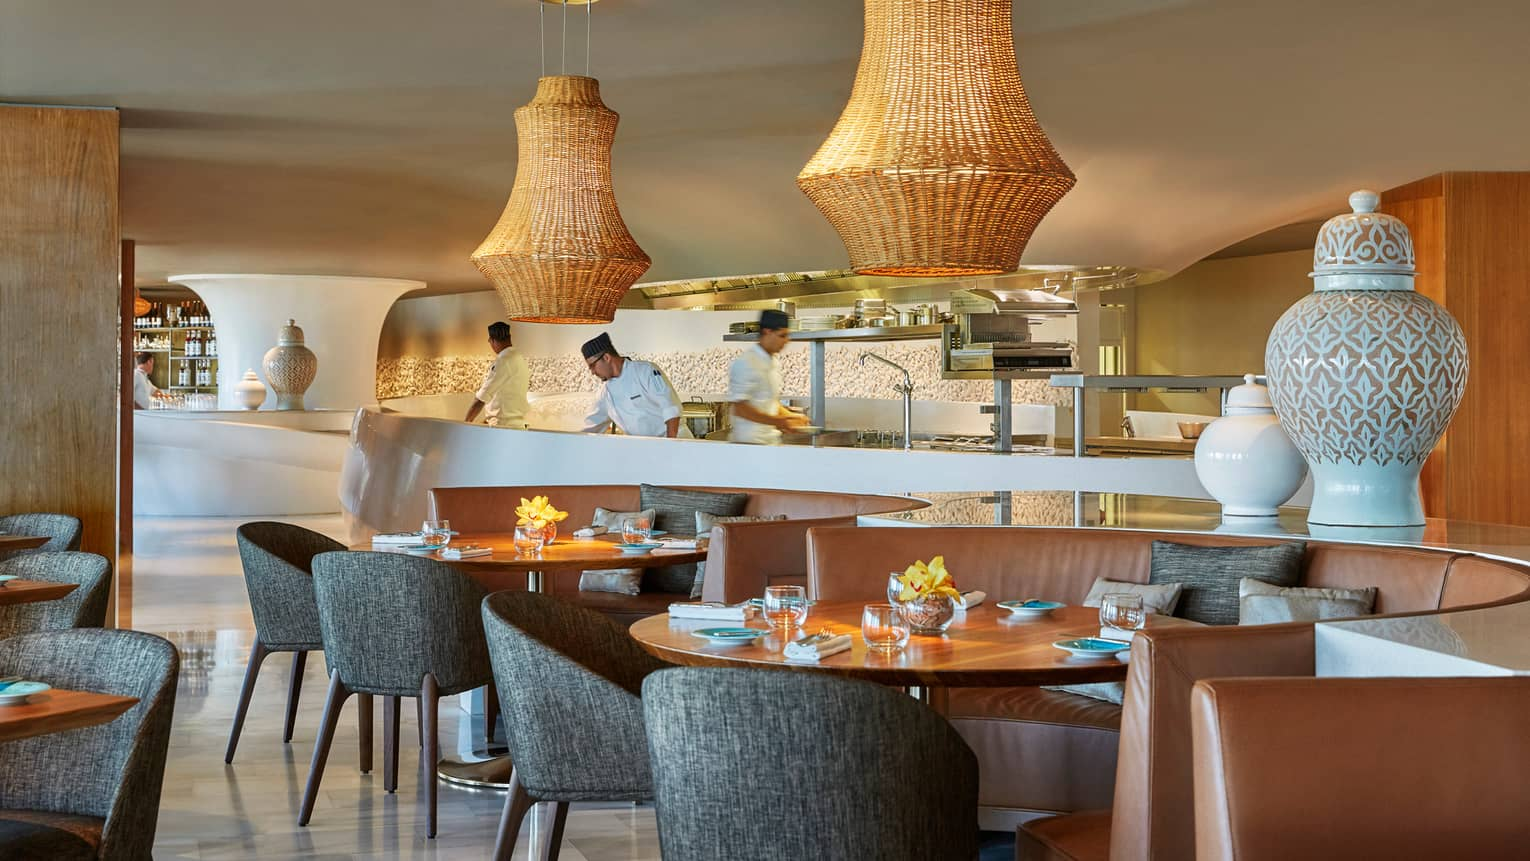 Large wicker lamps hang over mid-century style dining tables and chairs at Blue restaurant, chefs work in background